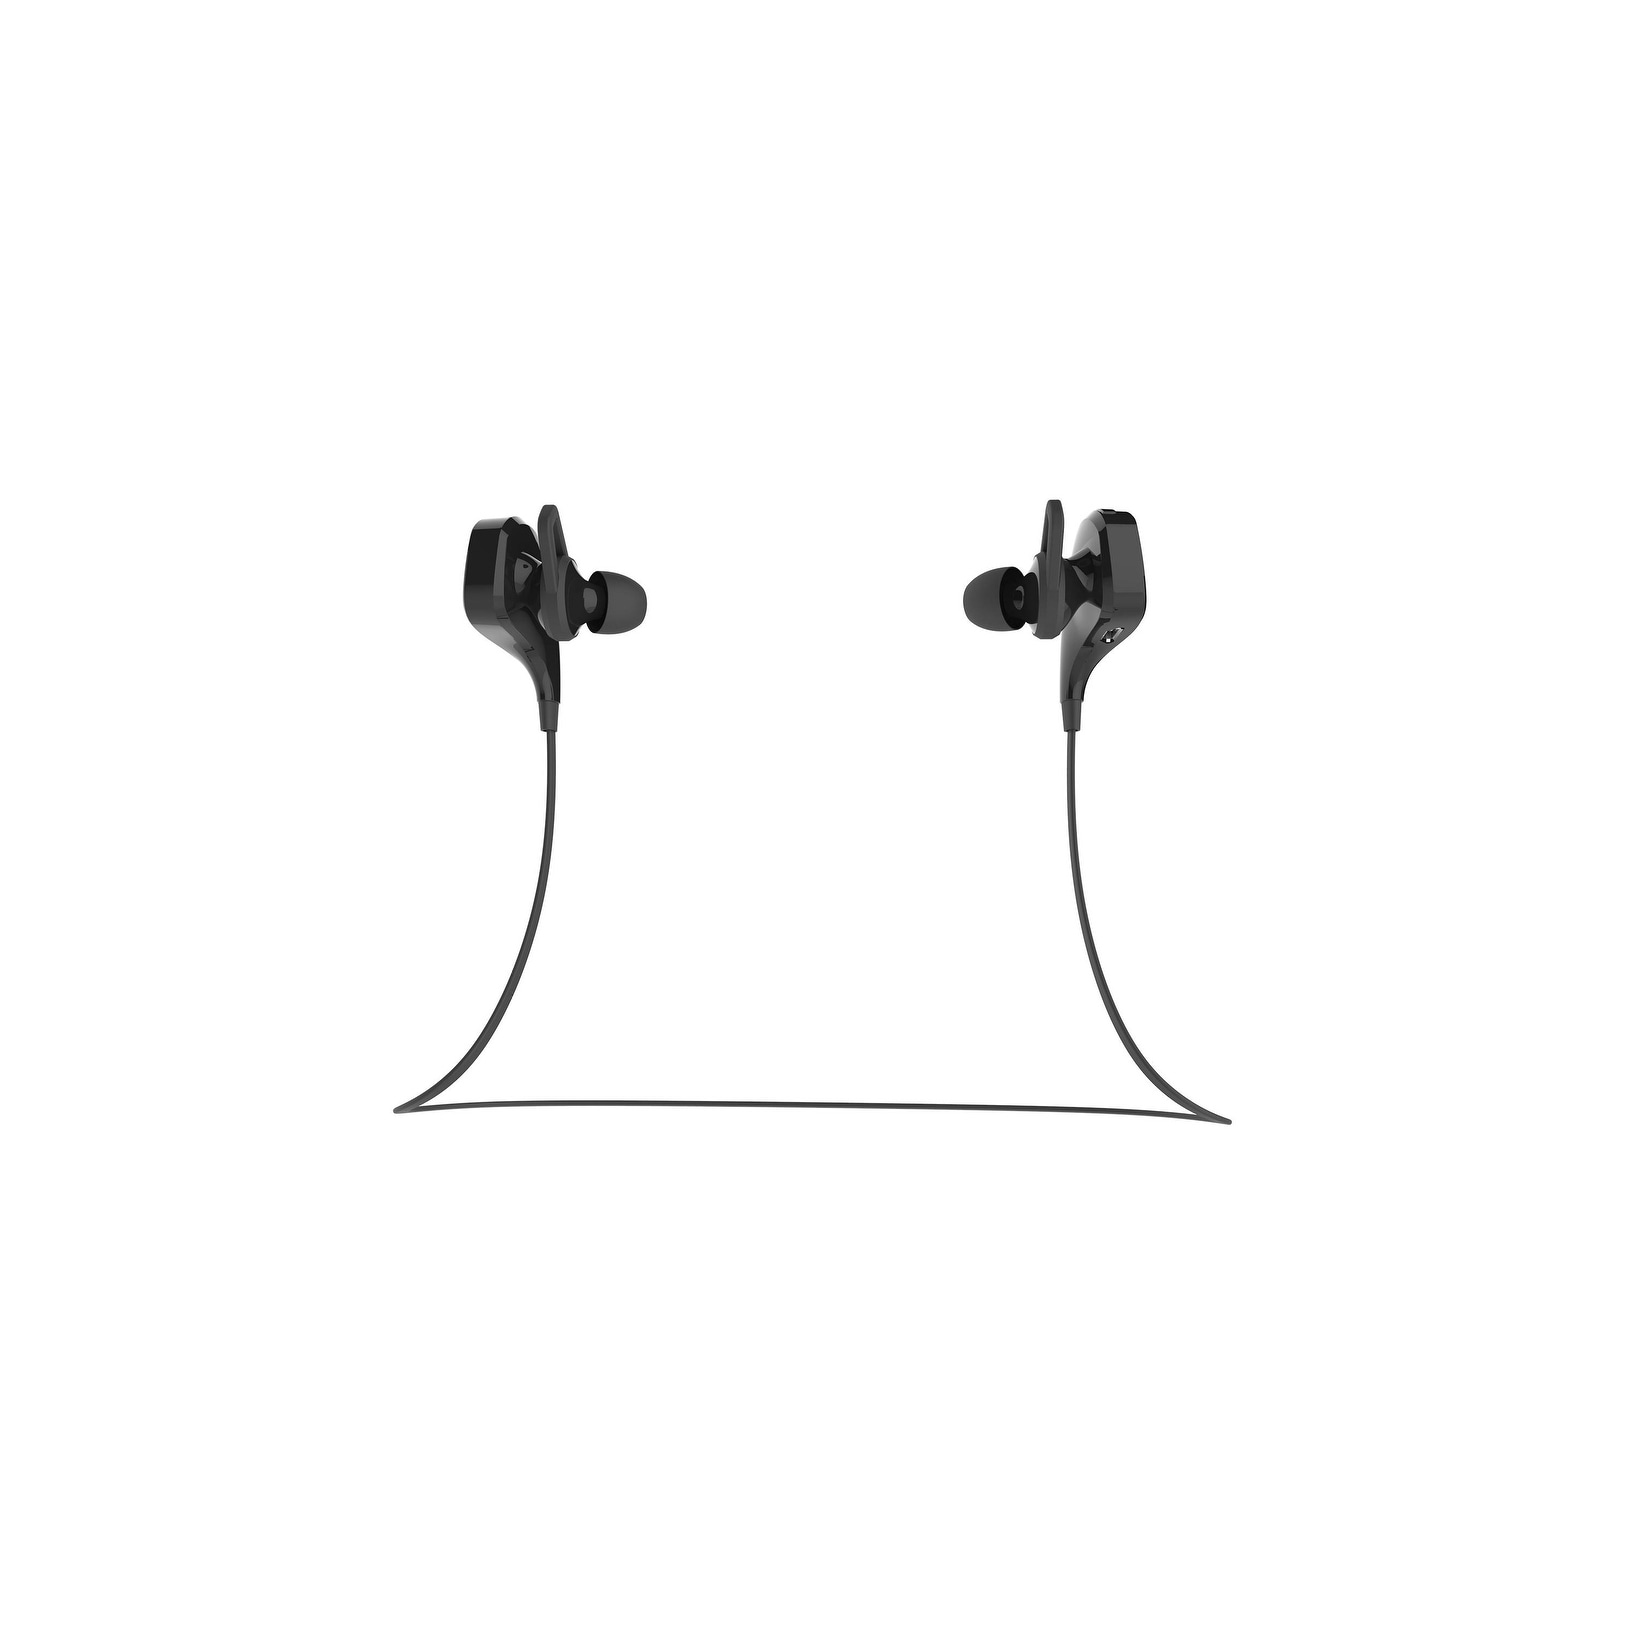 e49948203de Shop BEM Wireless Active Earbuds Wireless Bluetooth - Black - 4 x 4 x 1 -  Free Shipping On Orders Over $45 - Overstock.com - 18816591